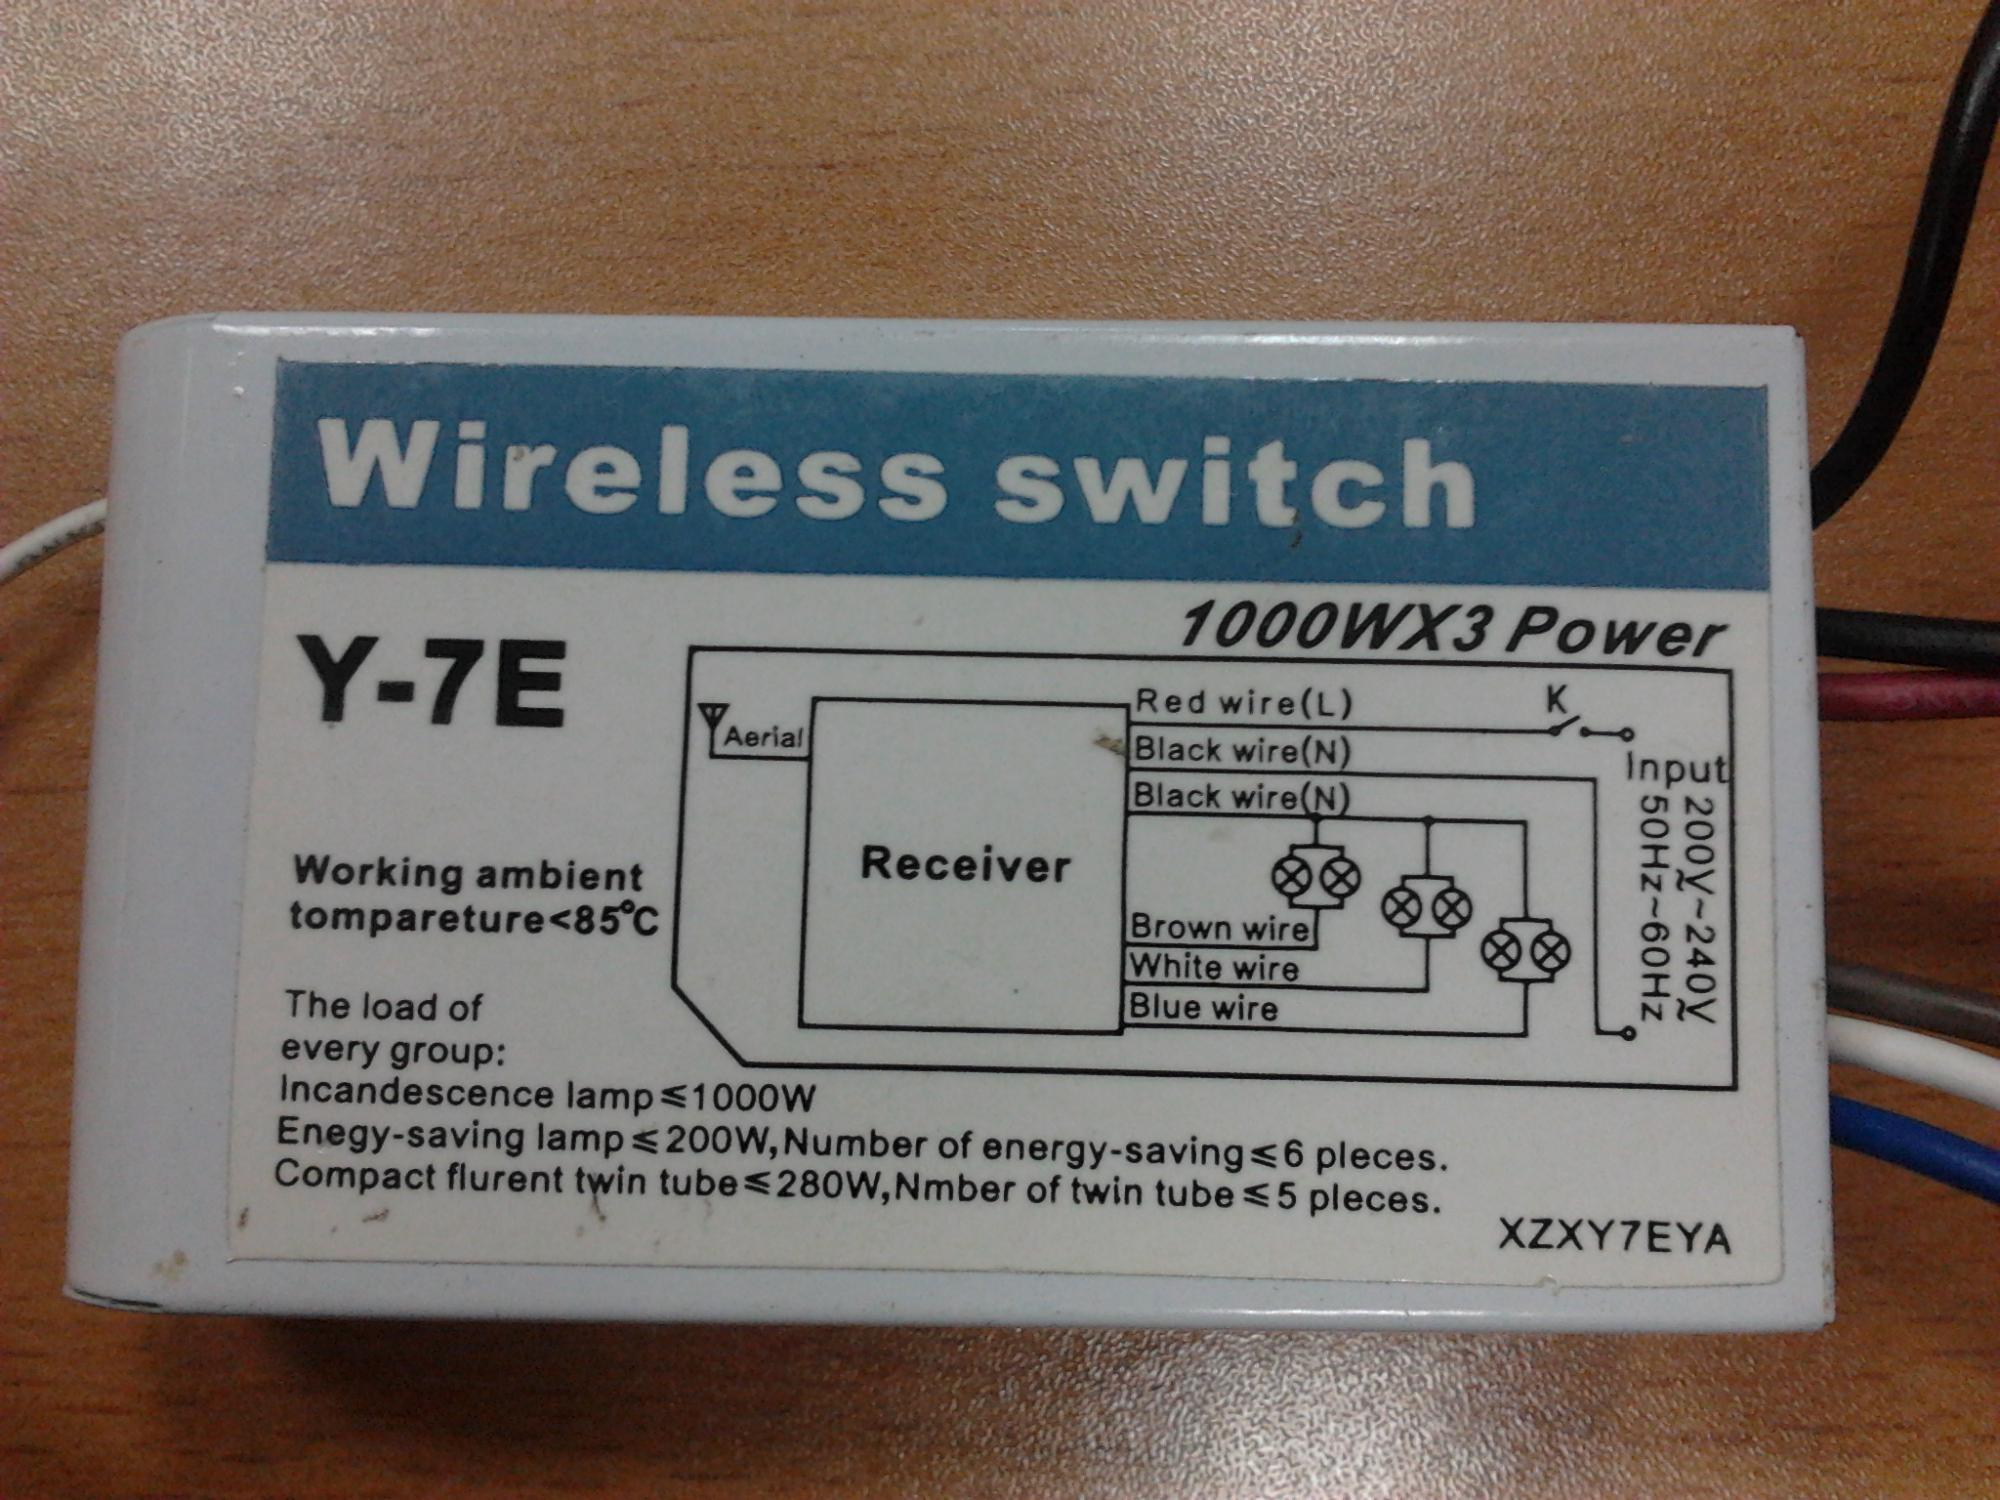 Wireless switch y 2e схема фото 427